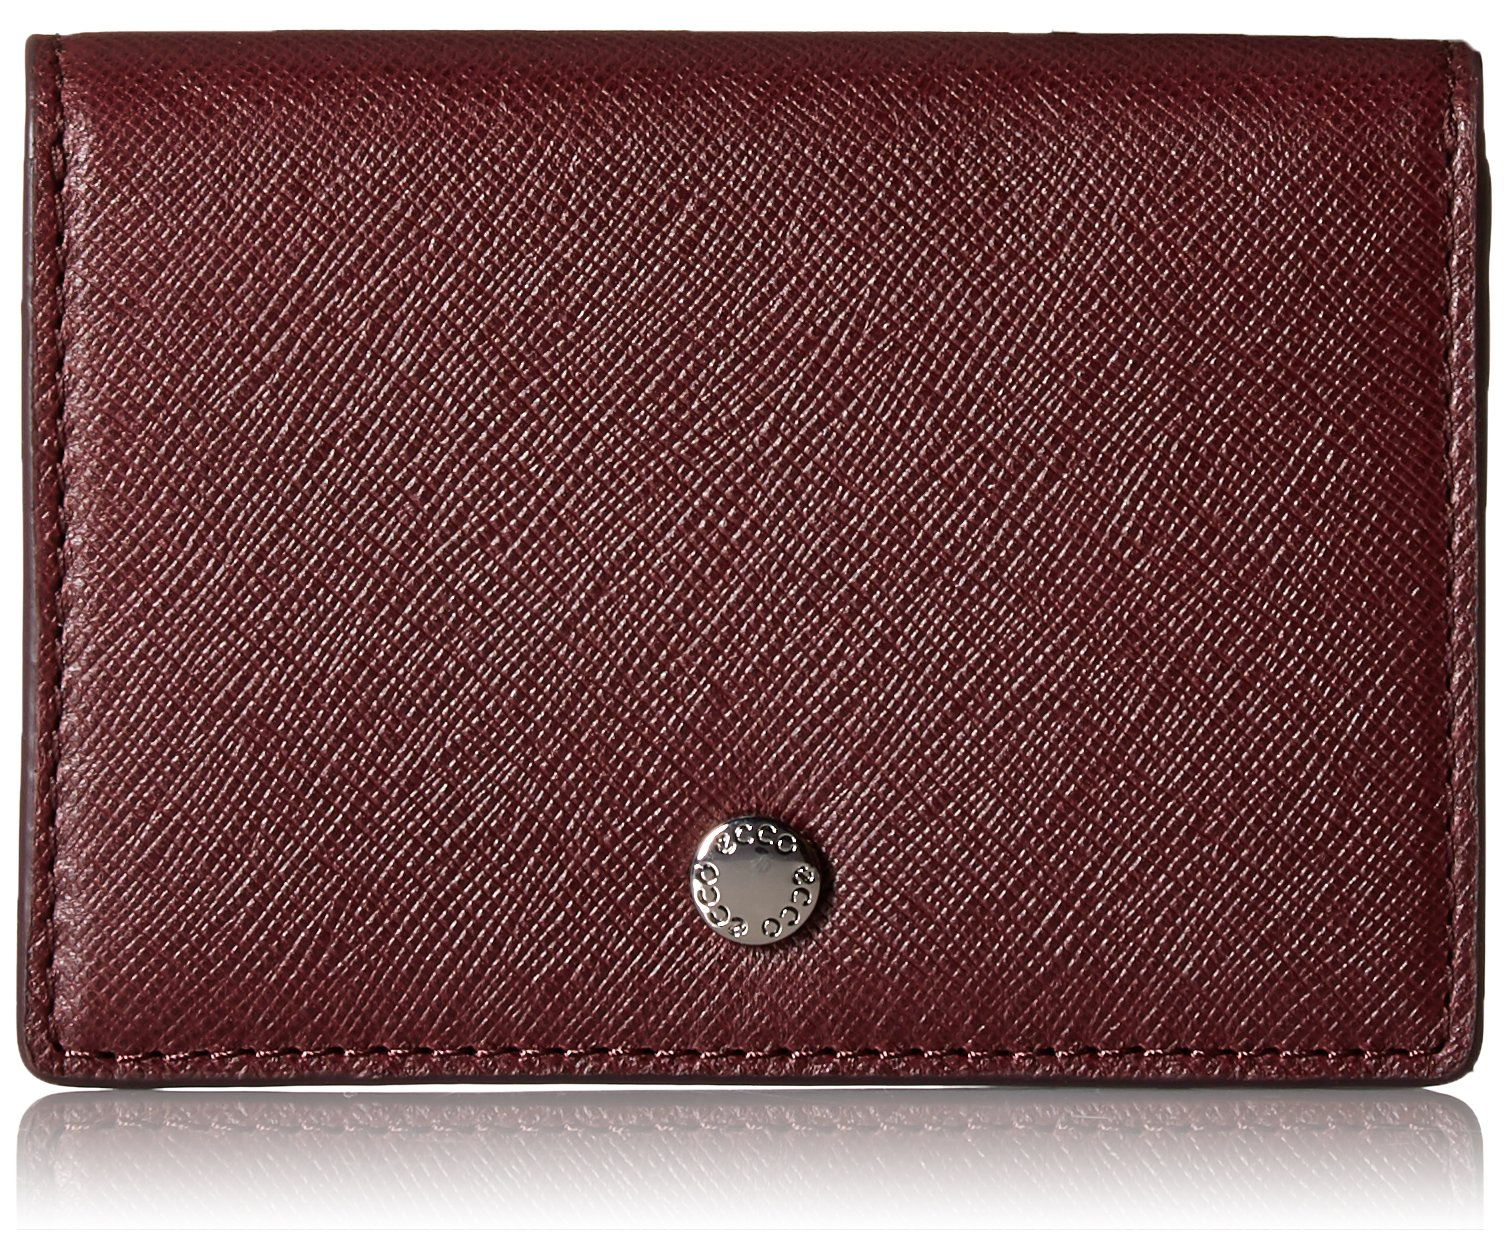 Iola Card Case Credit Card Holder, Wine, One Size